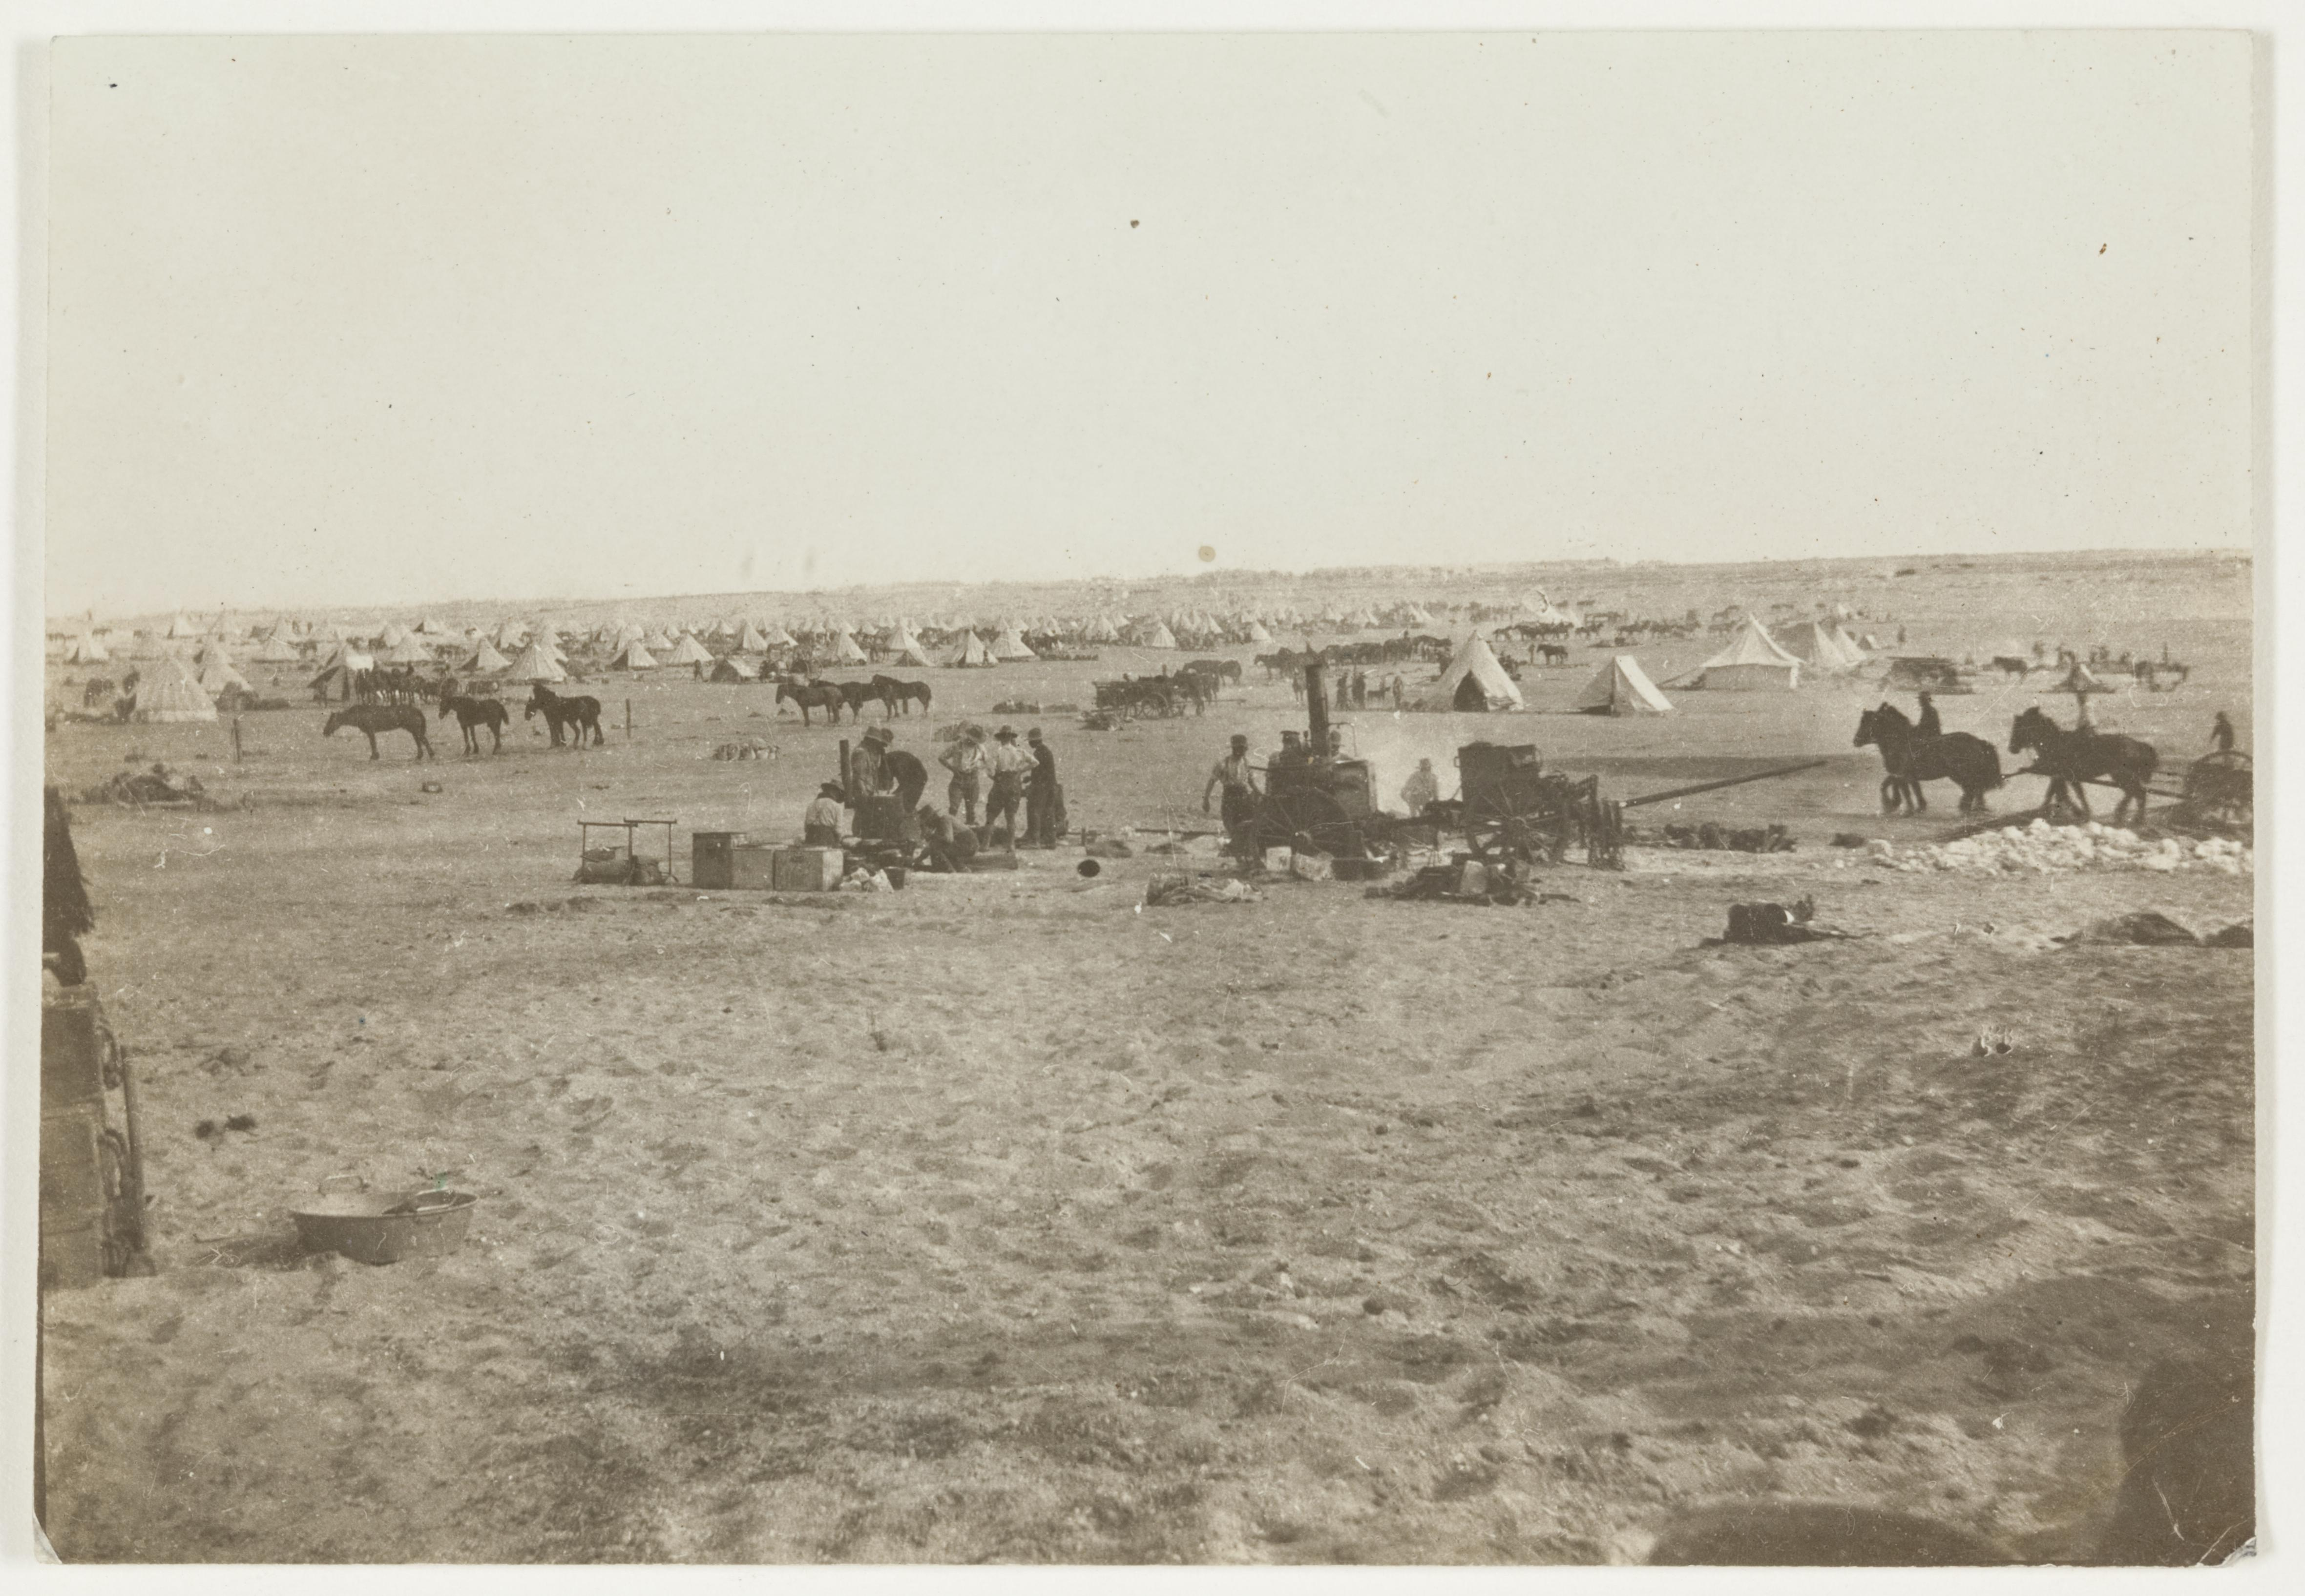 Serapeum Camp, Sinai Desert  by J.F. Smith of the 7th Light Horse in Egypt and Palestine, c. 1914-1918